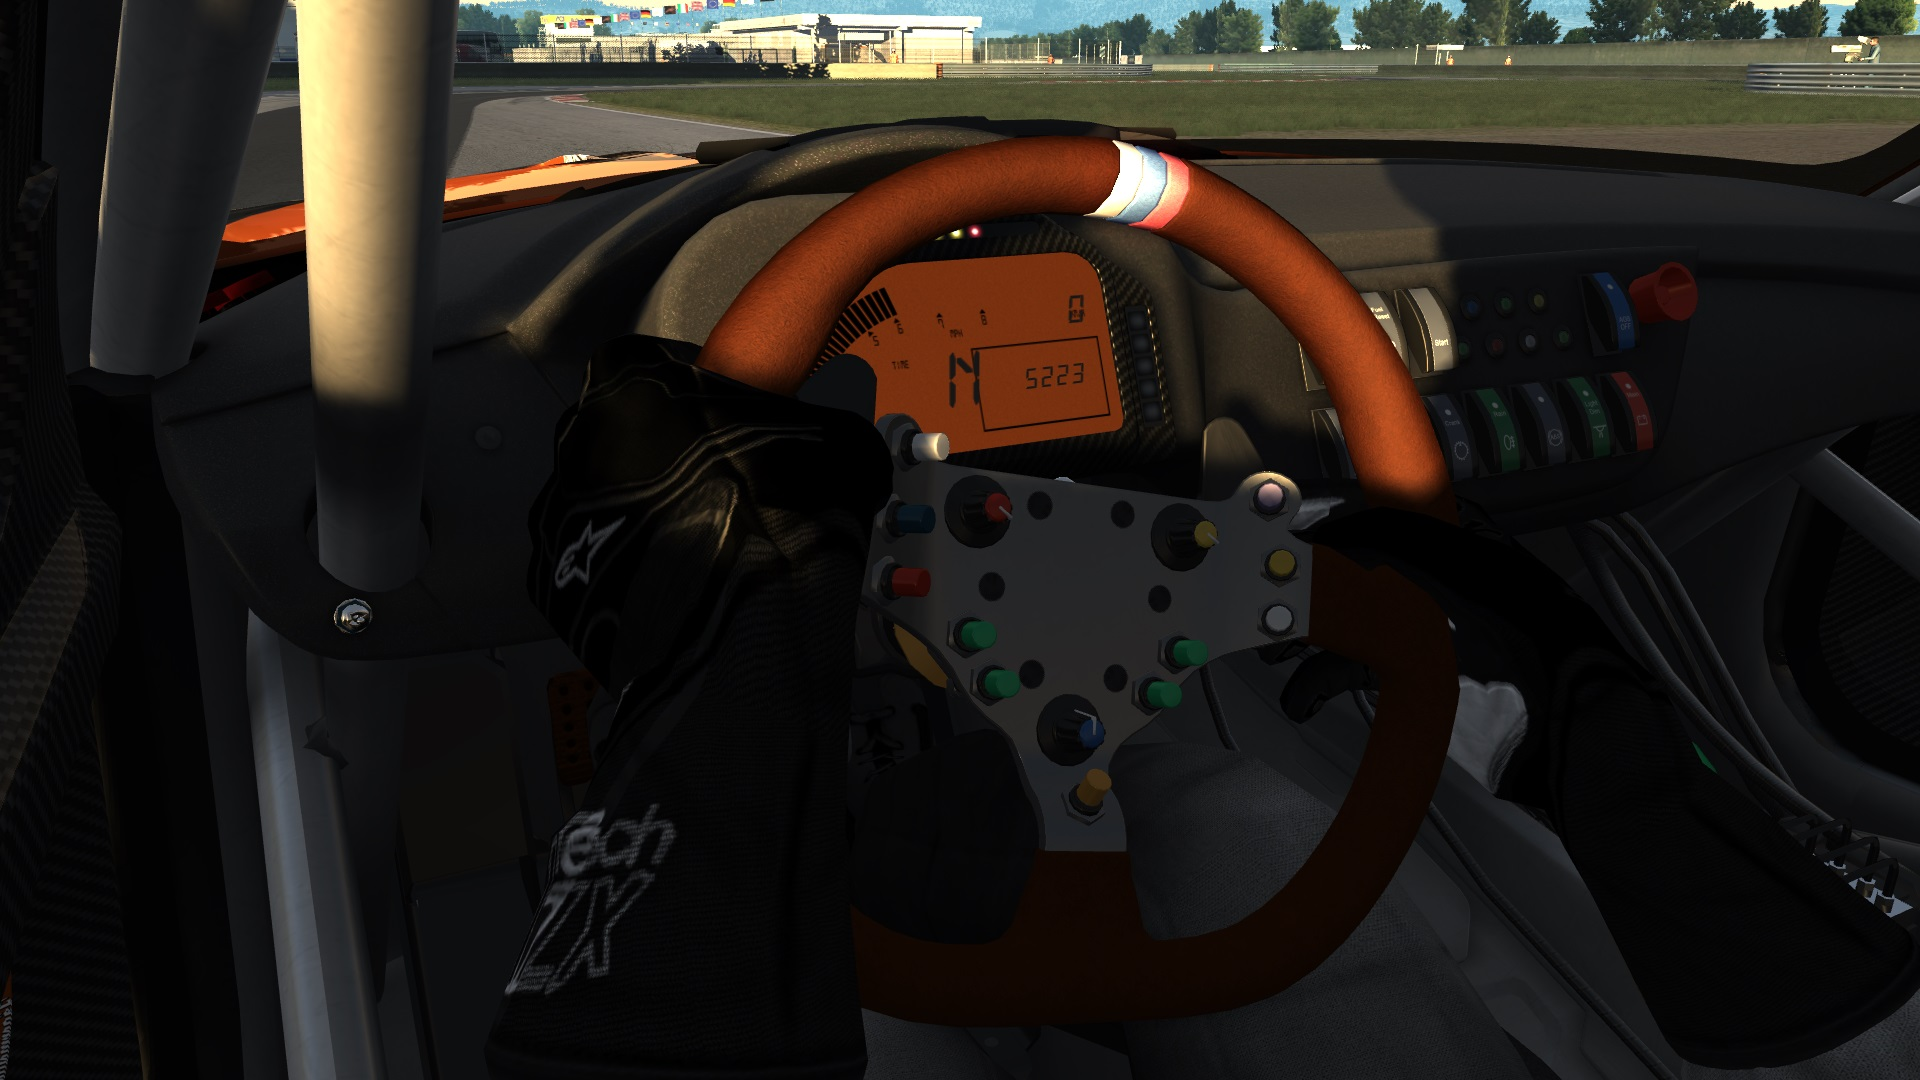 Screenshot_bmw_z4_gt3_magione_2-6-2014-19-36-32.jpg